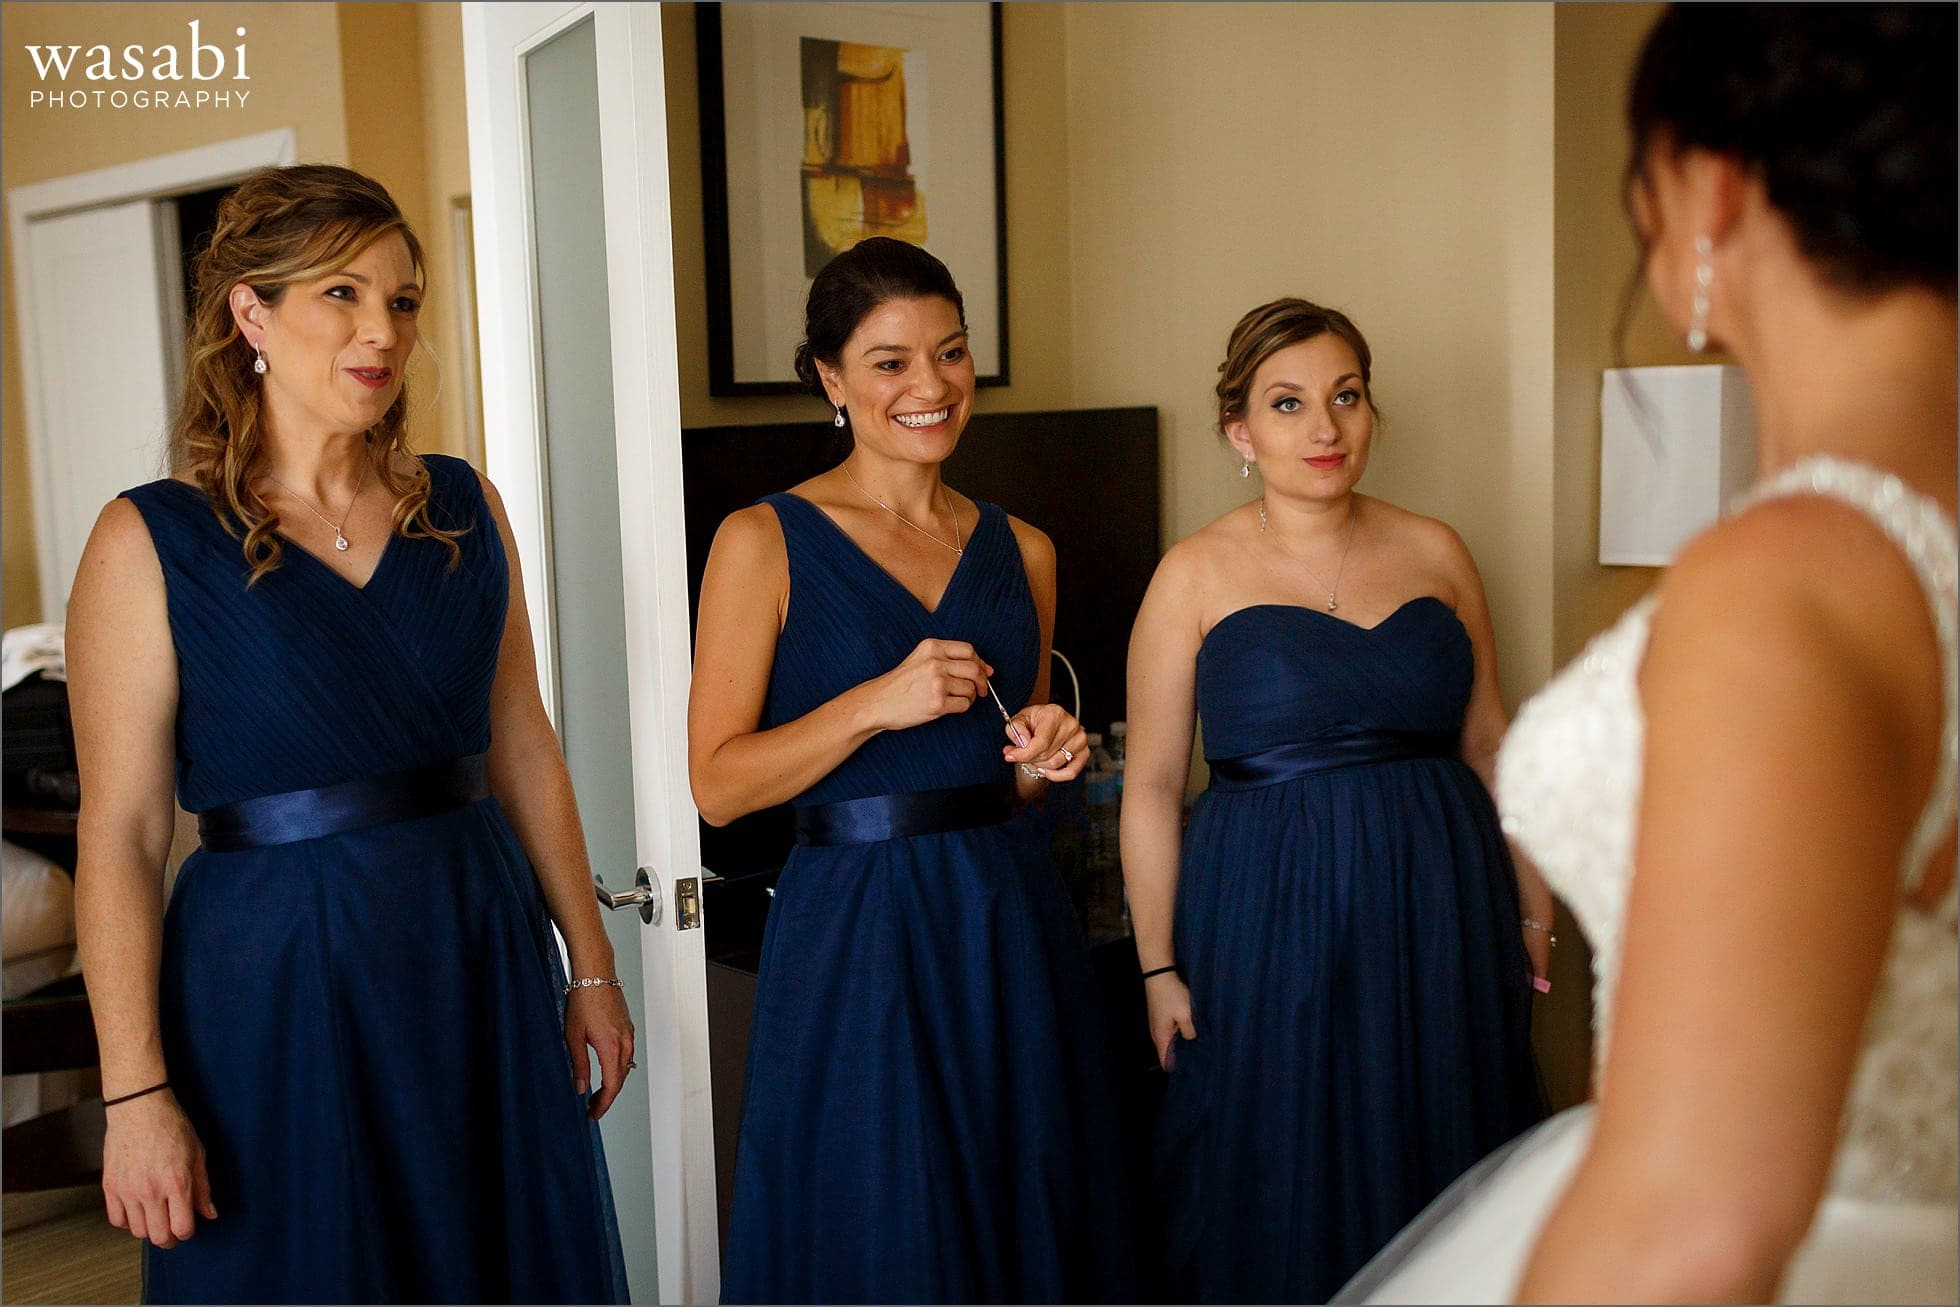 bridesmaids react to seeing bride in wedding dress while getting ready for her wedding at Raffaello Hotel in Chicago